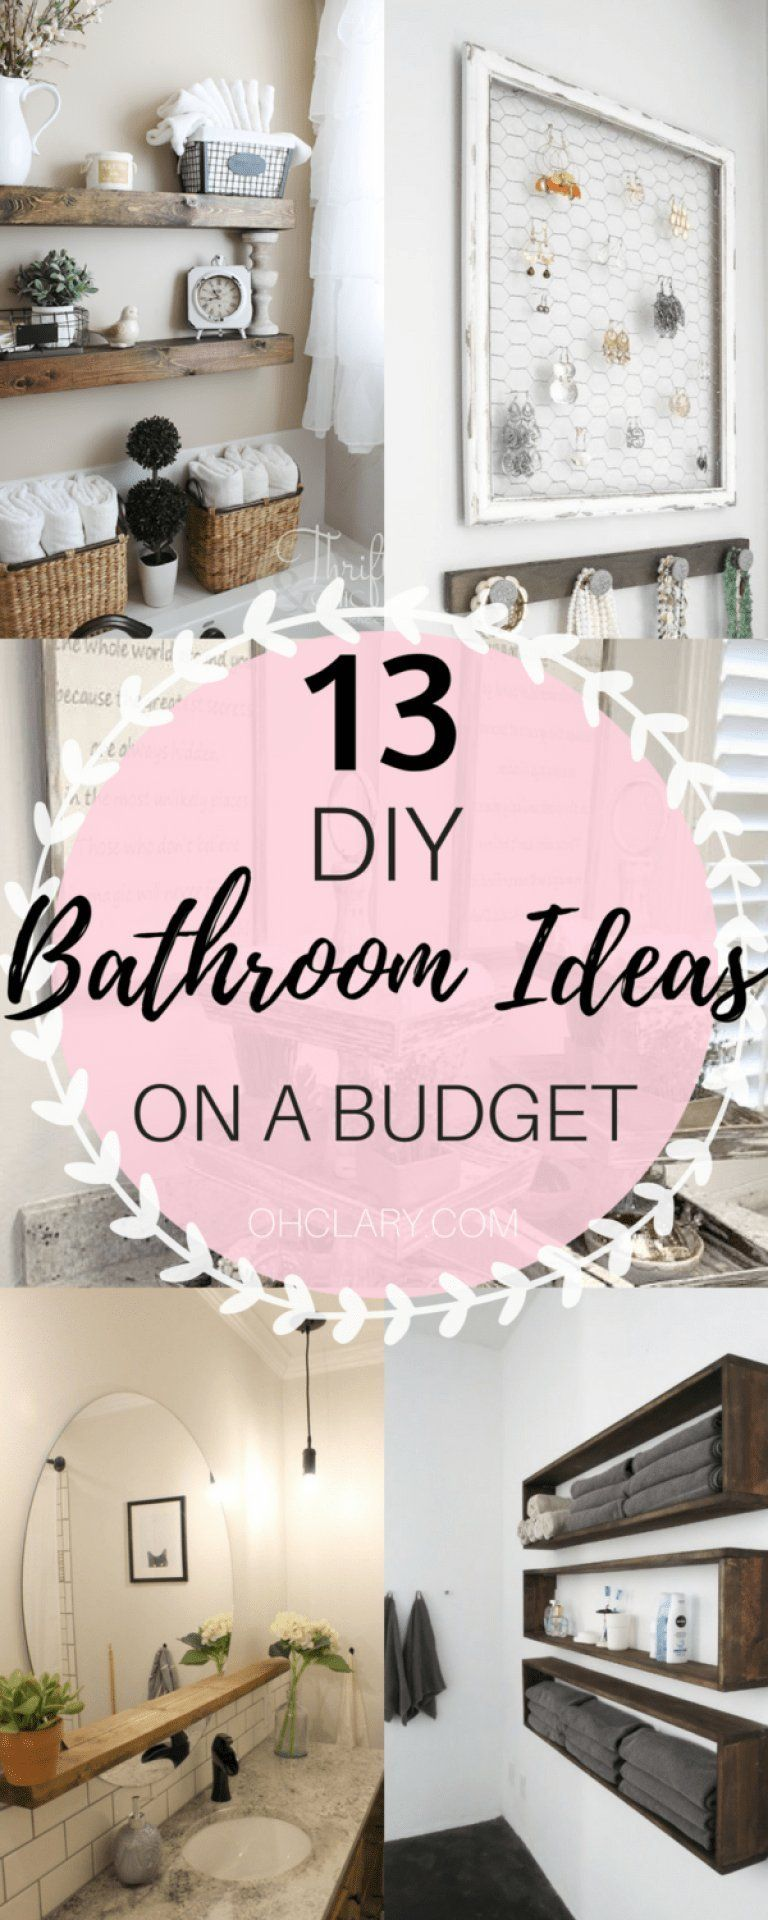 Photo of 12 DIY Bathroom Decor Ideas On a Budget You Can't Afford to Miss Out On DIY Ba…